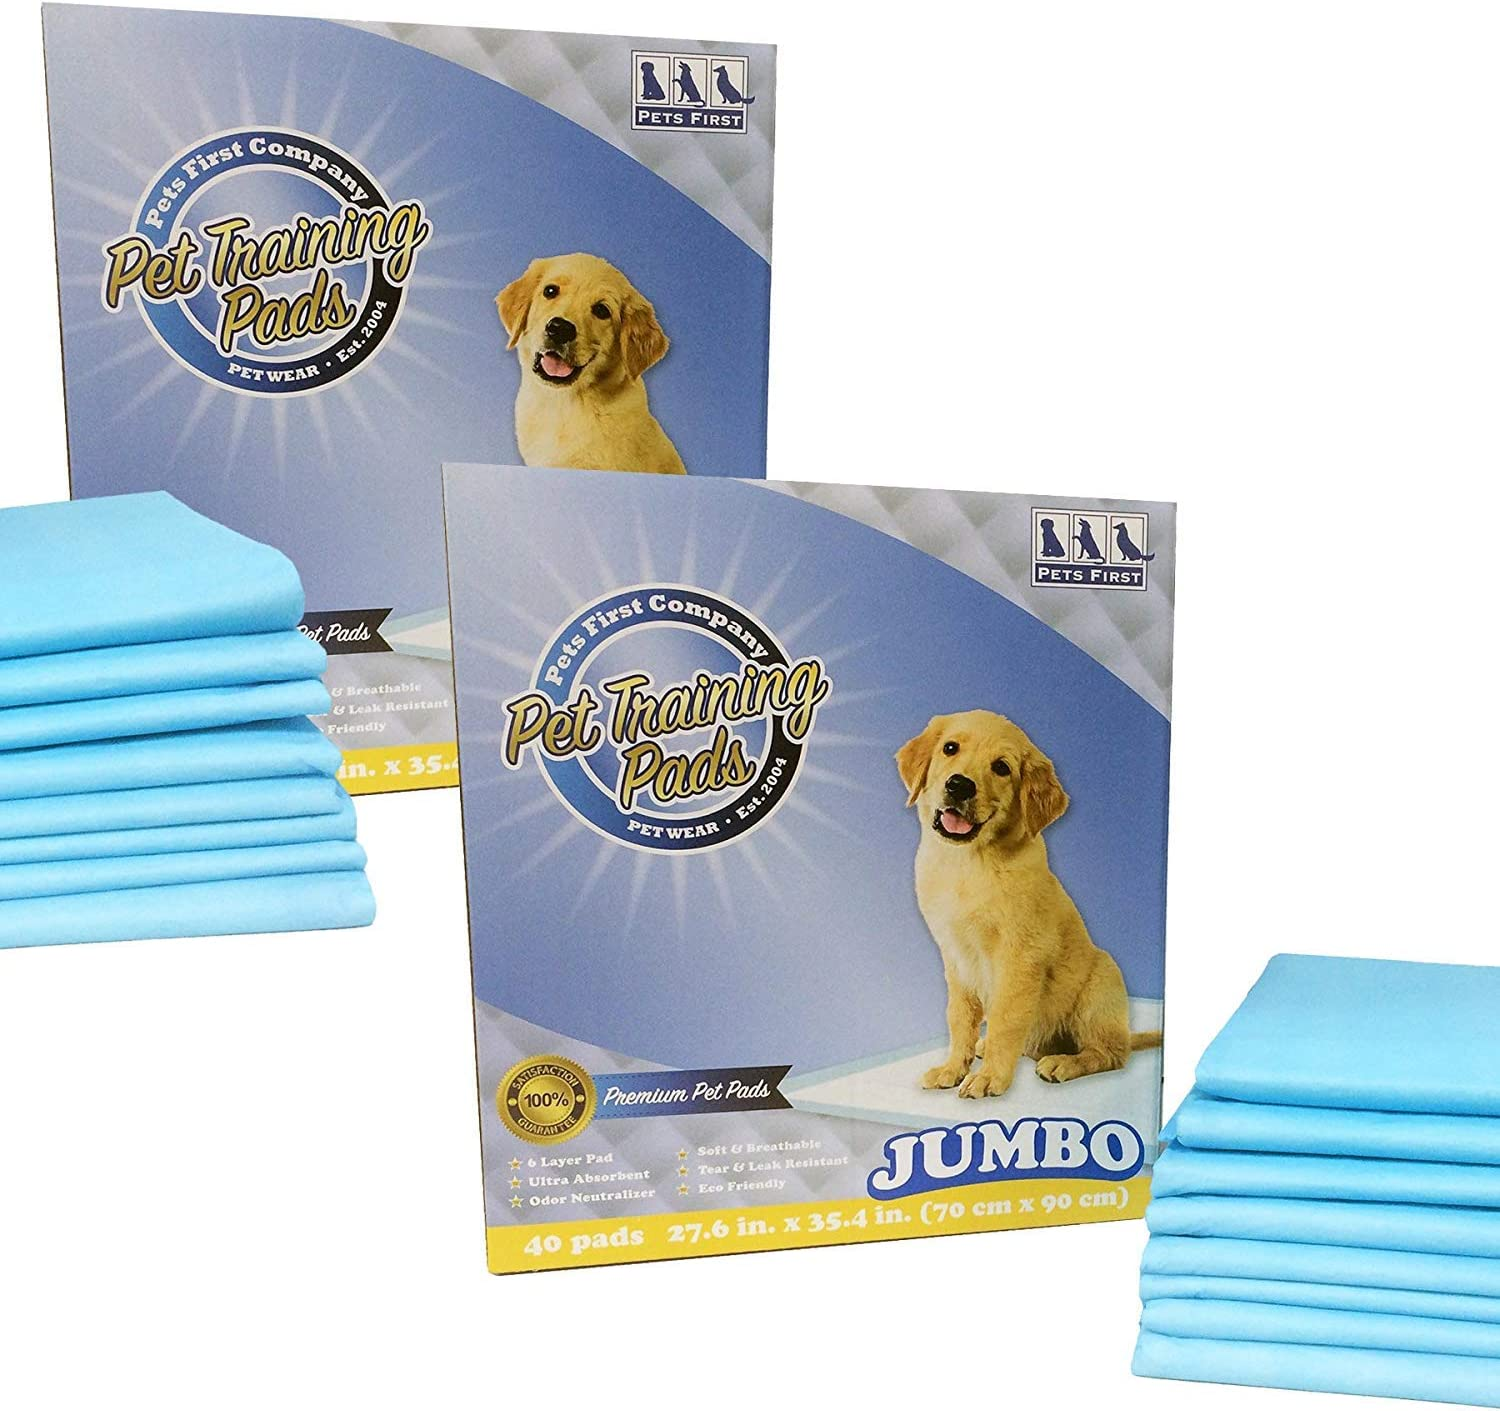 Pets First TP-7080 PREMIUM Charlotte Mall JUMBO Newest Count 80 TRAINING PADS Popular brand in the world